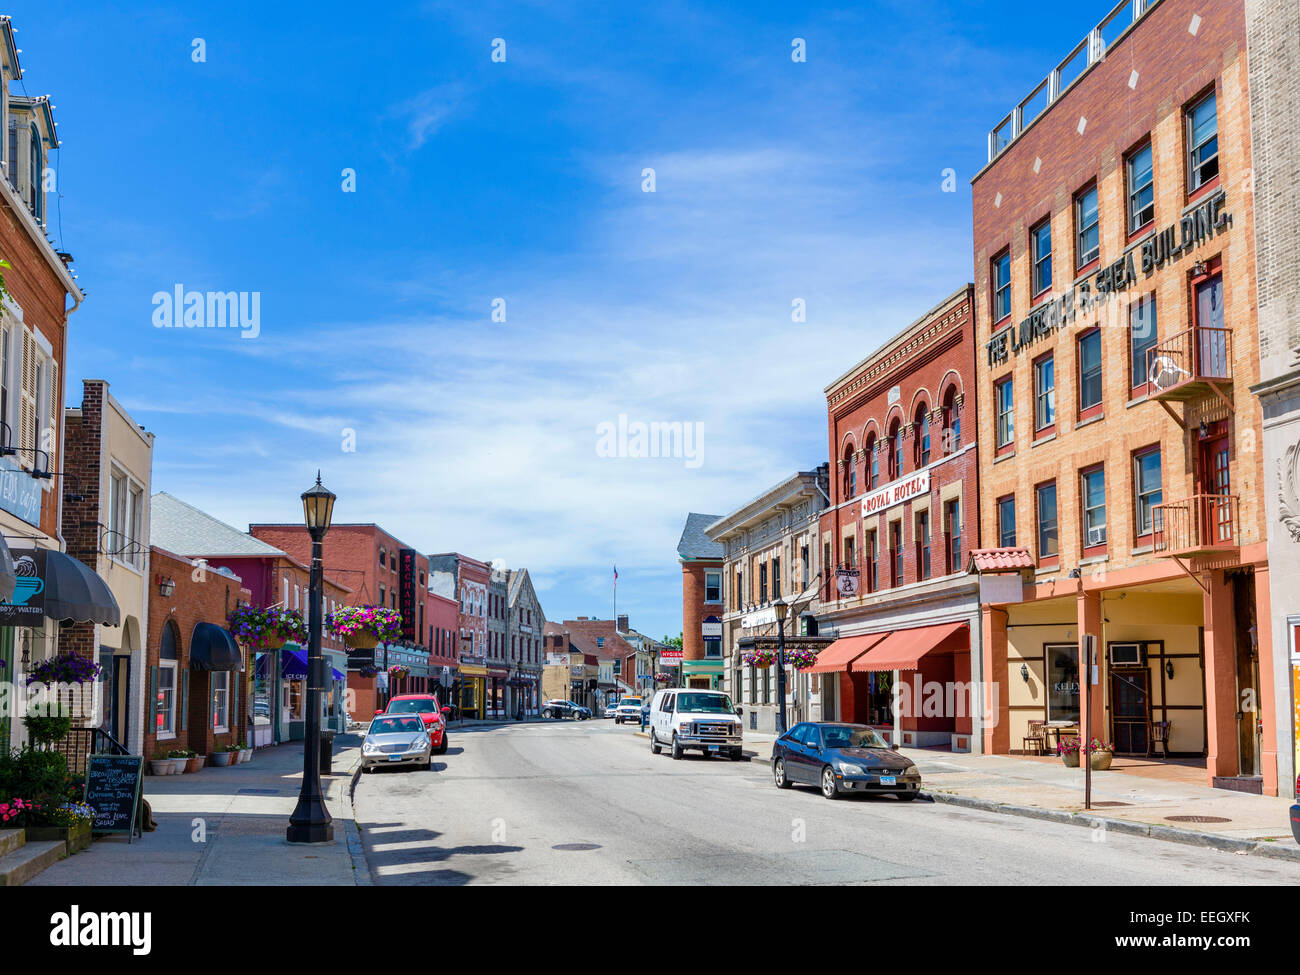 Bank Street in downtown New London, Connecticut, USA - Stock Image